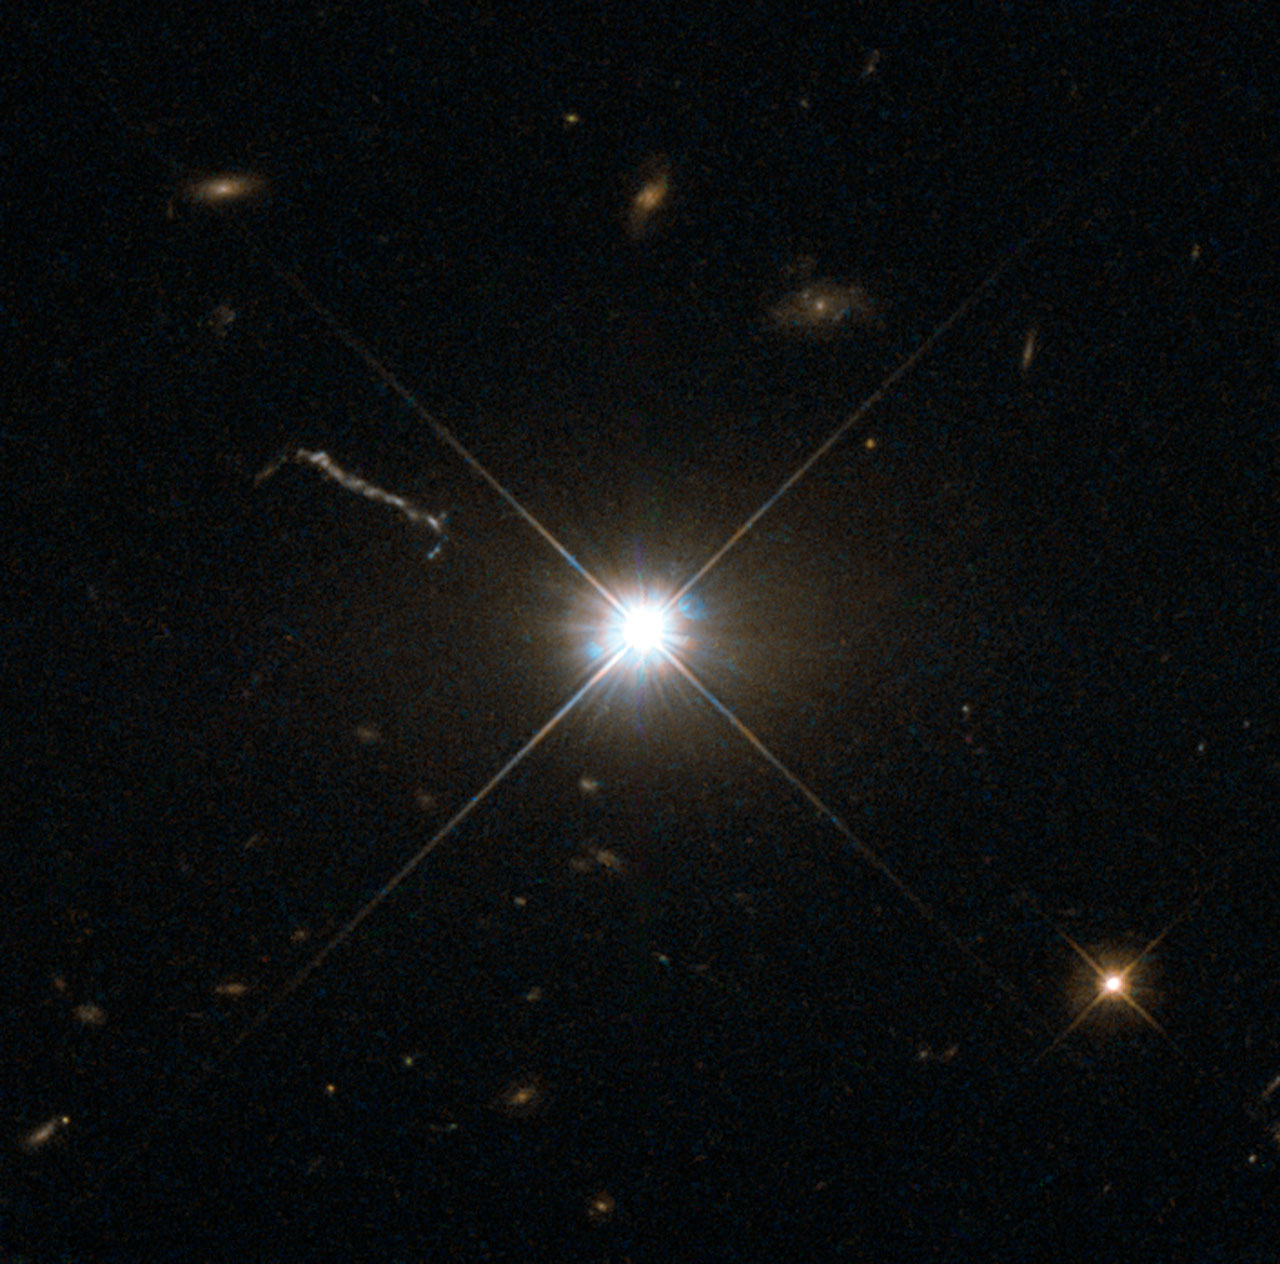 """Figure 3: """"This image from Hubble's Wide Field and Planetary Camera 2 (WFPC2) is likely the best of ancient and brilliant quasar 3C 273, which resides in a giant elliptical galaxy in the constellation of Virgo (The Virgin). Its light has taken some 2.5 billion years to reach us. Despite this great distance, it is still one of the closest quasars to our home. It was the first quasar ever to be identified, and was discovered in the early 1960s by astronomer Allan Sandage. The term quasar is an abbreviation of the phrase """"quasi-stellar radio source"""", as they appear to be star-like on the sky. In fact, quasars are the intensely powerful centres of distant, active galaxies, powered by a huge disc of particles surrounding a supermassive black hole. As material from this disc falls inwards, some quasars — including 3C 273 — have been observed to fire off super-fast jets into the surrounding space. In this picture, one of these jets appears as a cloudy streak, measuring some 200 000 light-years in length. Quasars are capable of emitting hundreds or even thousands of times the entire energy output of our galaxy, making them some of the most luminous and energetic objects in the entire Universe. Of these very bright objects, 3C 273 is the brightest in our skies. If it was located 30 light-years from our own planet — roughly seven times the distance between Earth and Proxima Centauri, the nearest star to us after the Sun — it would still appear as bright as the Sun in the sky. WFPC2 was installed on Hubble during shuttle mission STS-125. It is the size of a small piano and was capable of seeing images in the visible, near-ultraviolet, and near-infrared parts of the spectrum.""""\(^{[3]}\)  Image Credit:ESA/Hubble [CC BY 4.0 (http://creativecommons.org/licenses/by/4.0)], via Wikimedia Commons"""